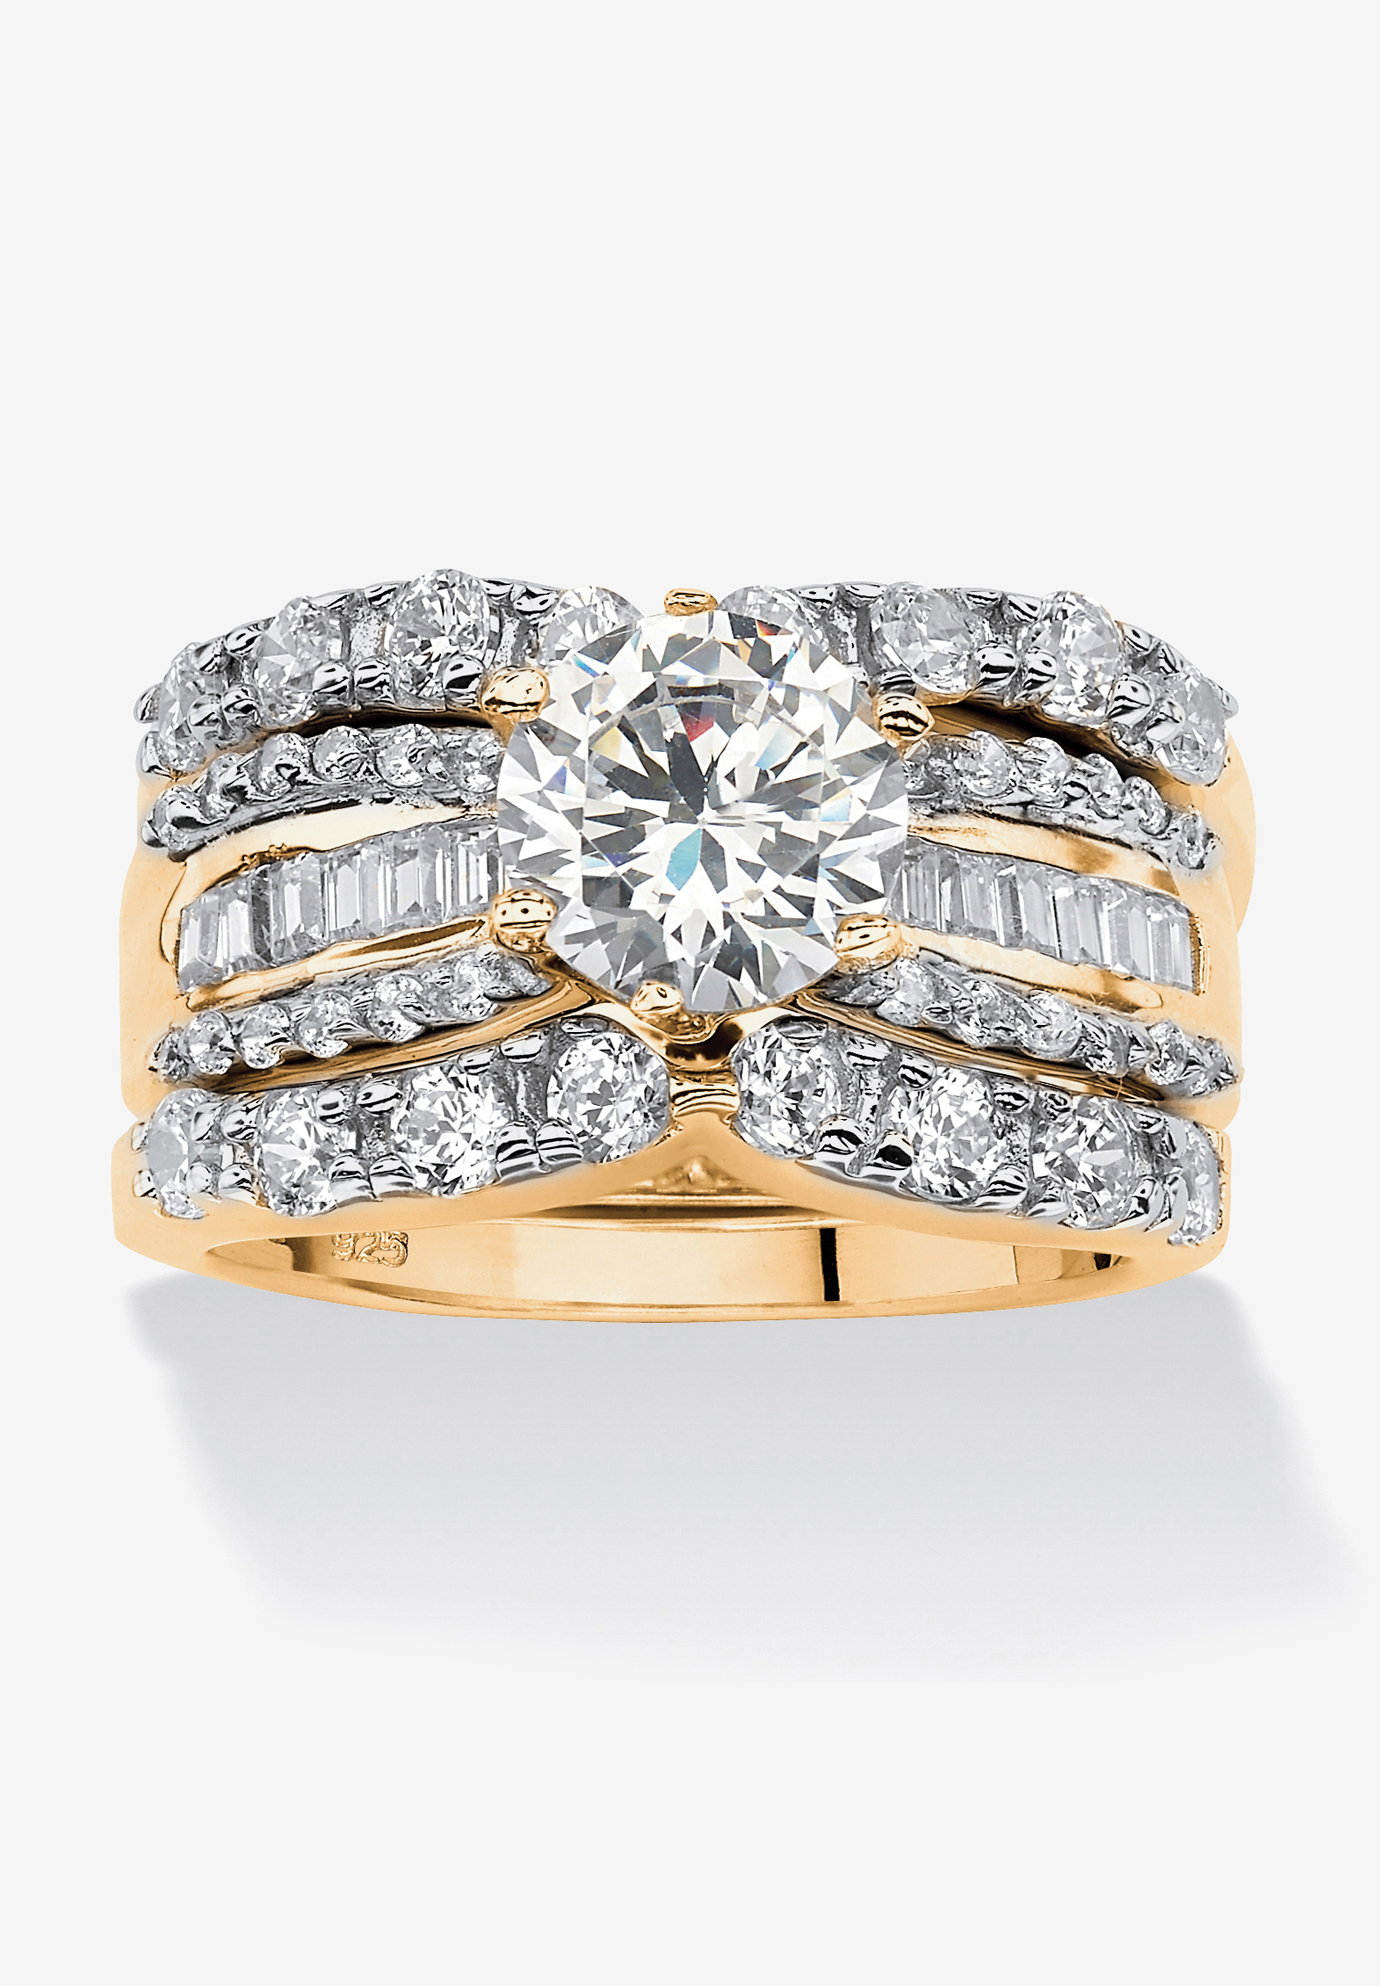 Gold over Silver Bridal Ring Set Cubic Zirconia (5 5/8 cttw TDW),